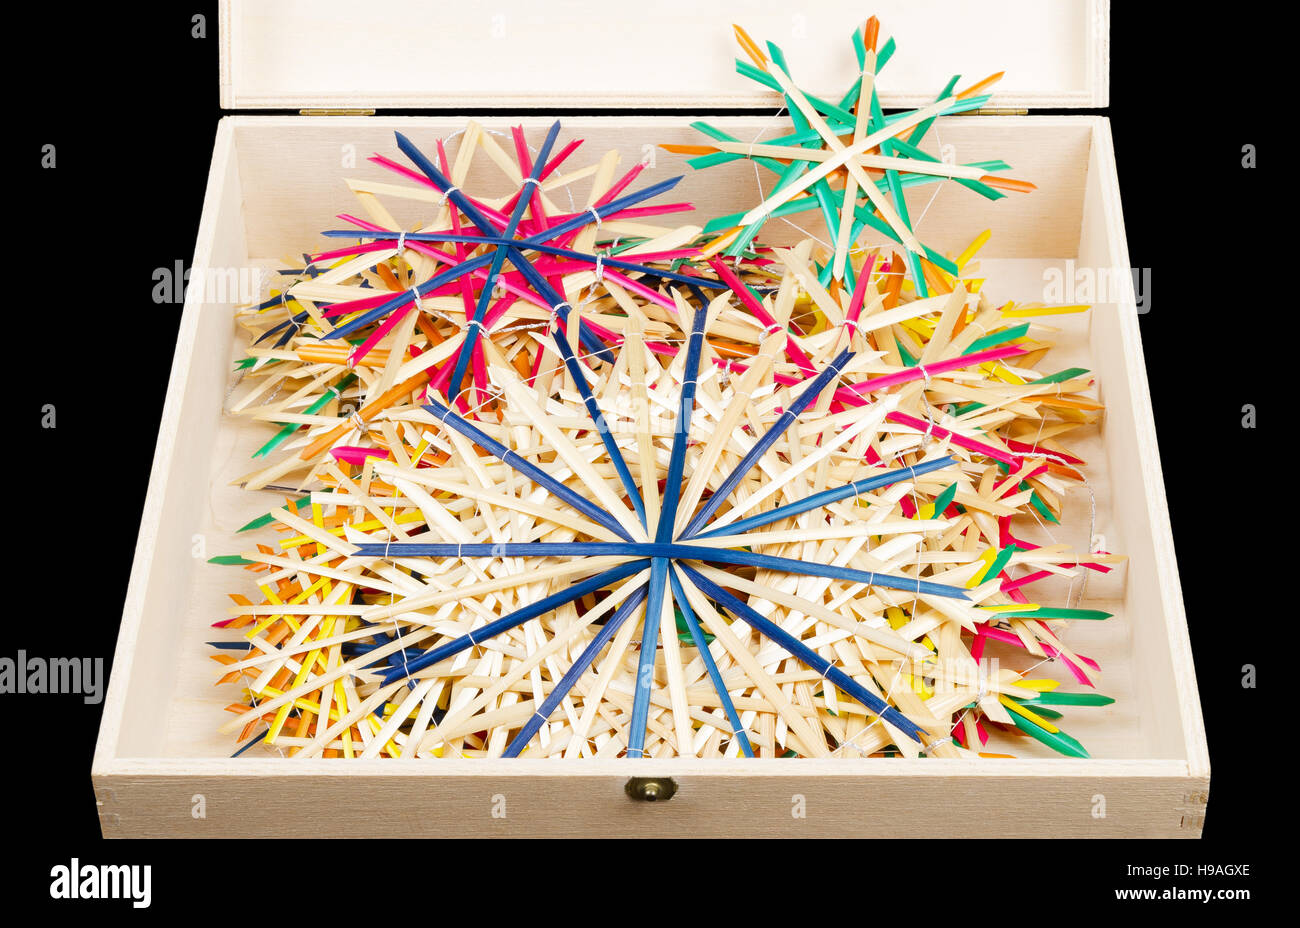 Straw stars Christmas decoration in wooden box. Handmade colorful decor for windows, as gifts or to hang on the Stock Photo